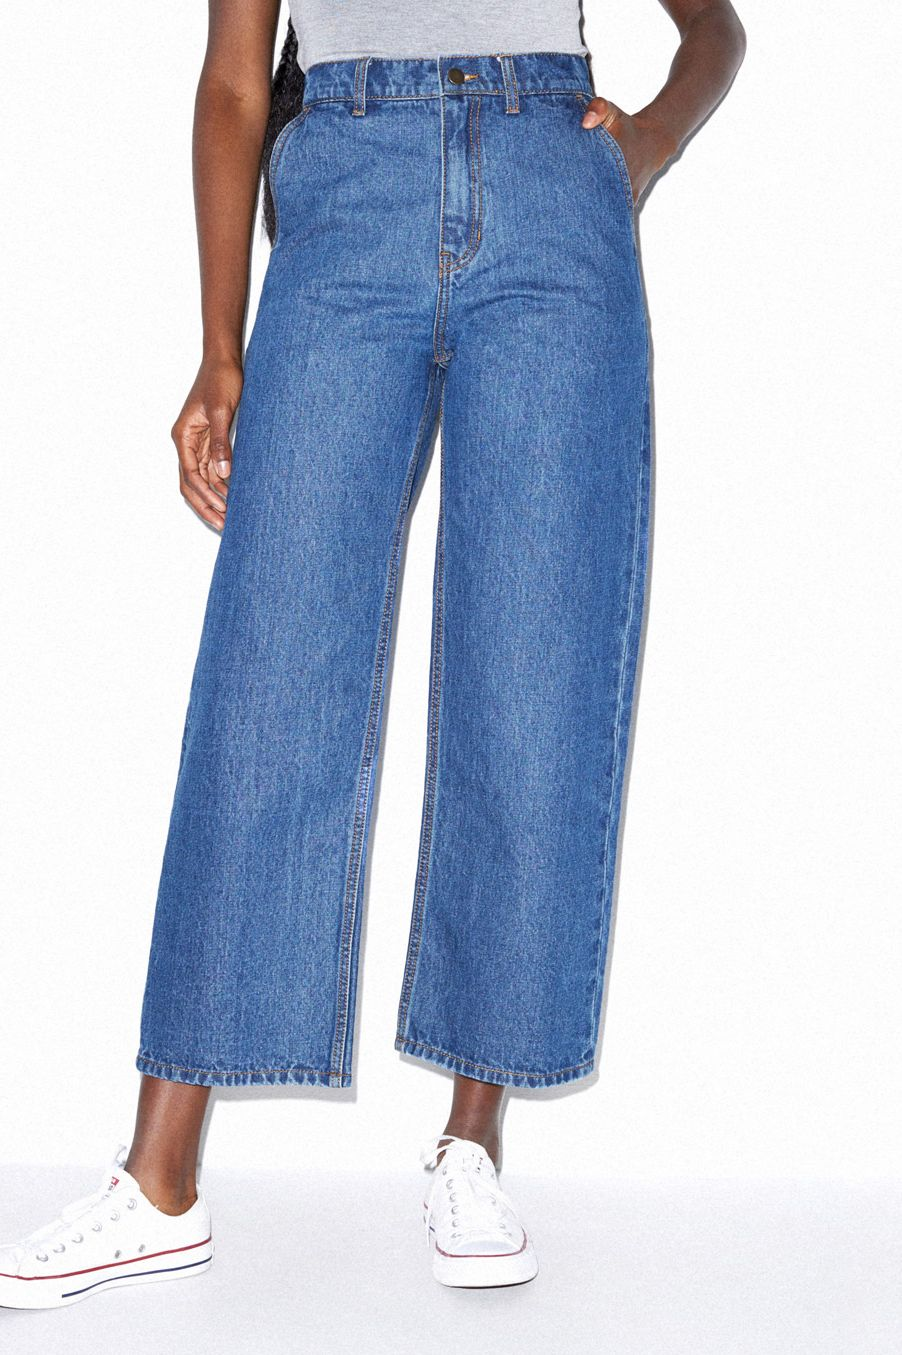 26437c3ed256d 30 Best Jeans for Women of All Sizes and Styles 2019